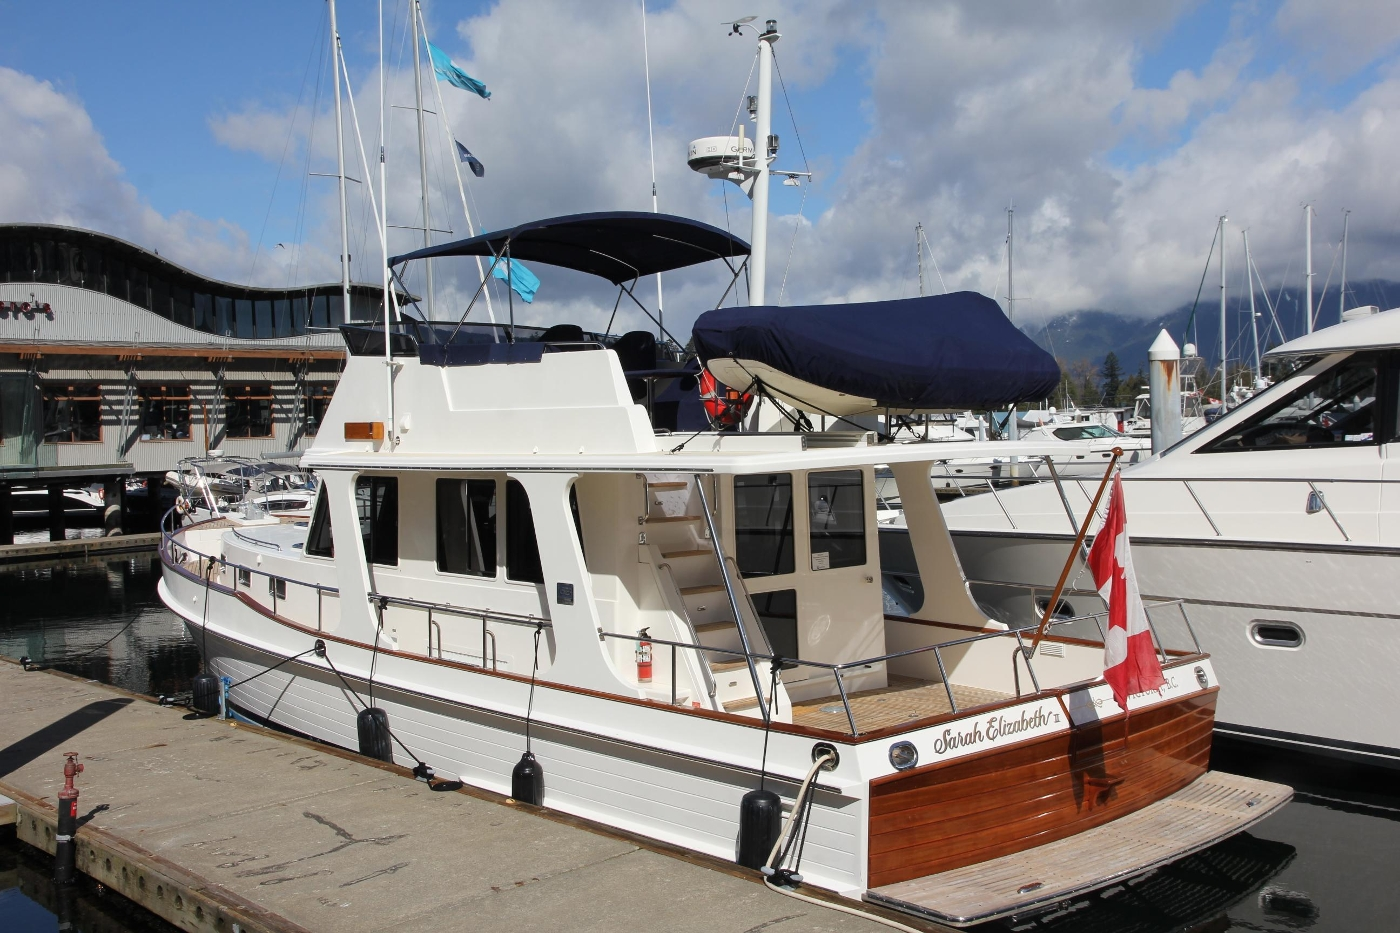 2009 Grand Banks 47 Europa, On the Pock Profile Aft